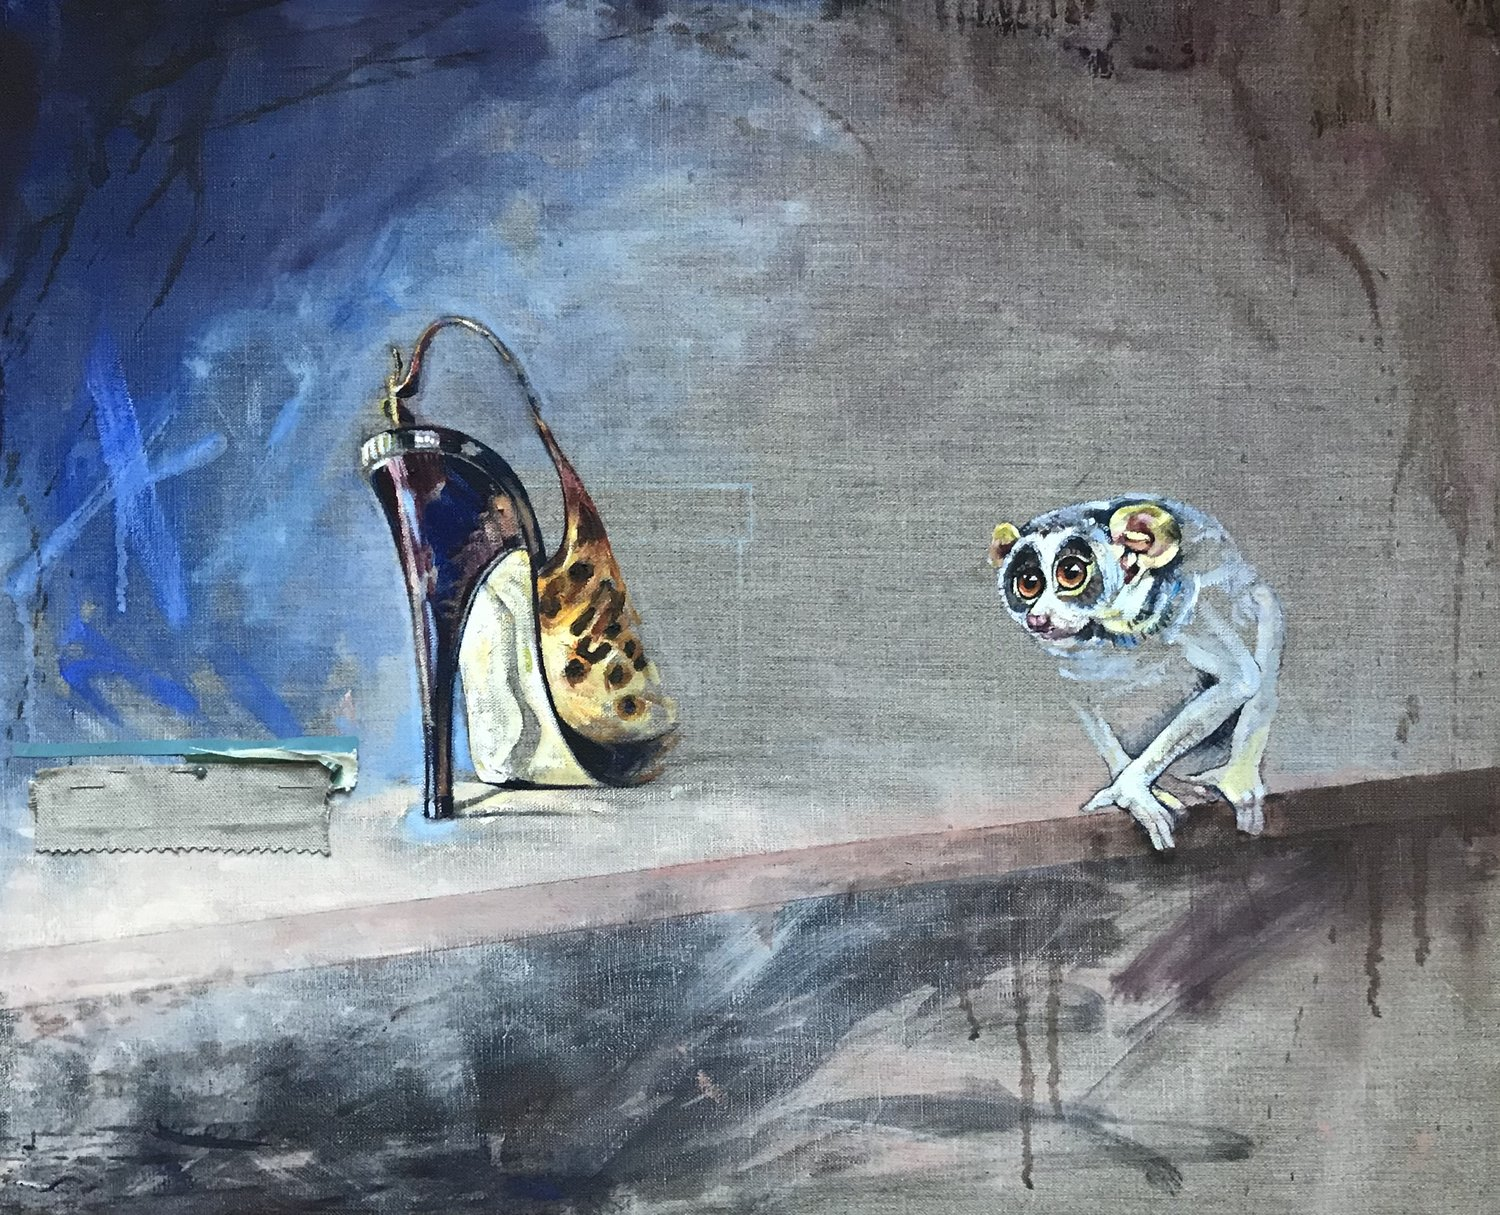 'The Loris Who Loved Shoes', Laura Andrew, Oil on canvas, 50 x 61 x 2 cm